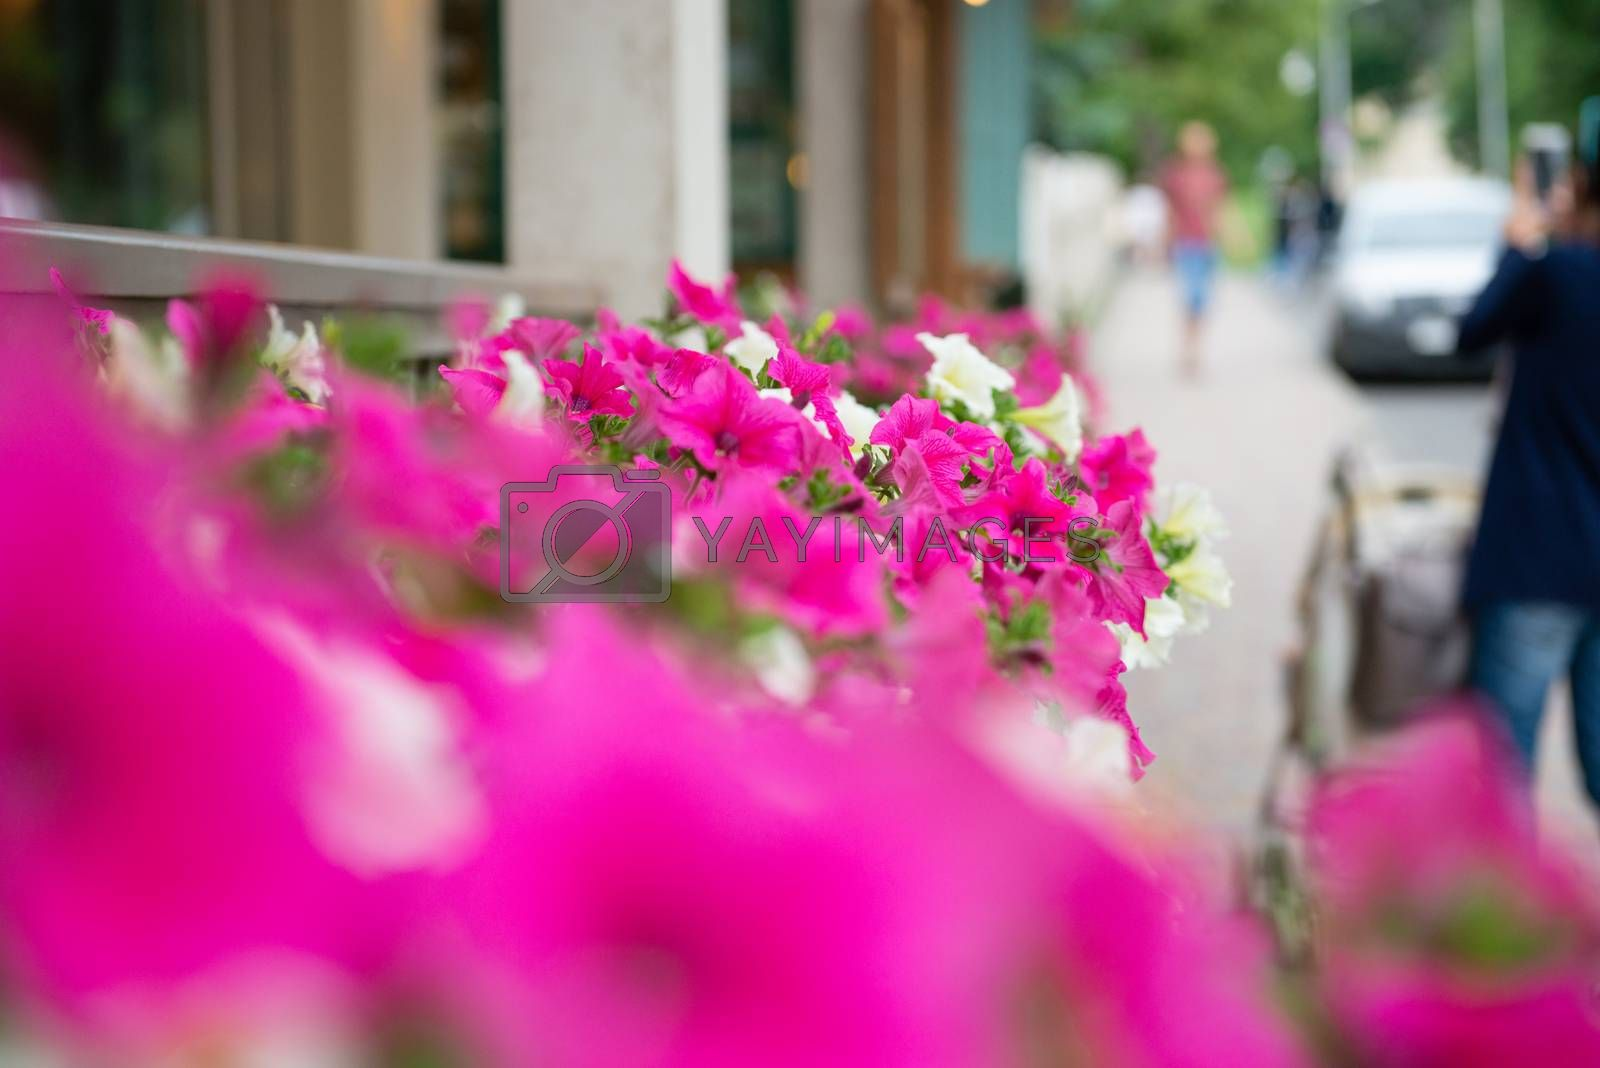 Garden flowers on street. Backdrop with copy space.